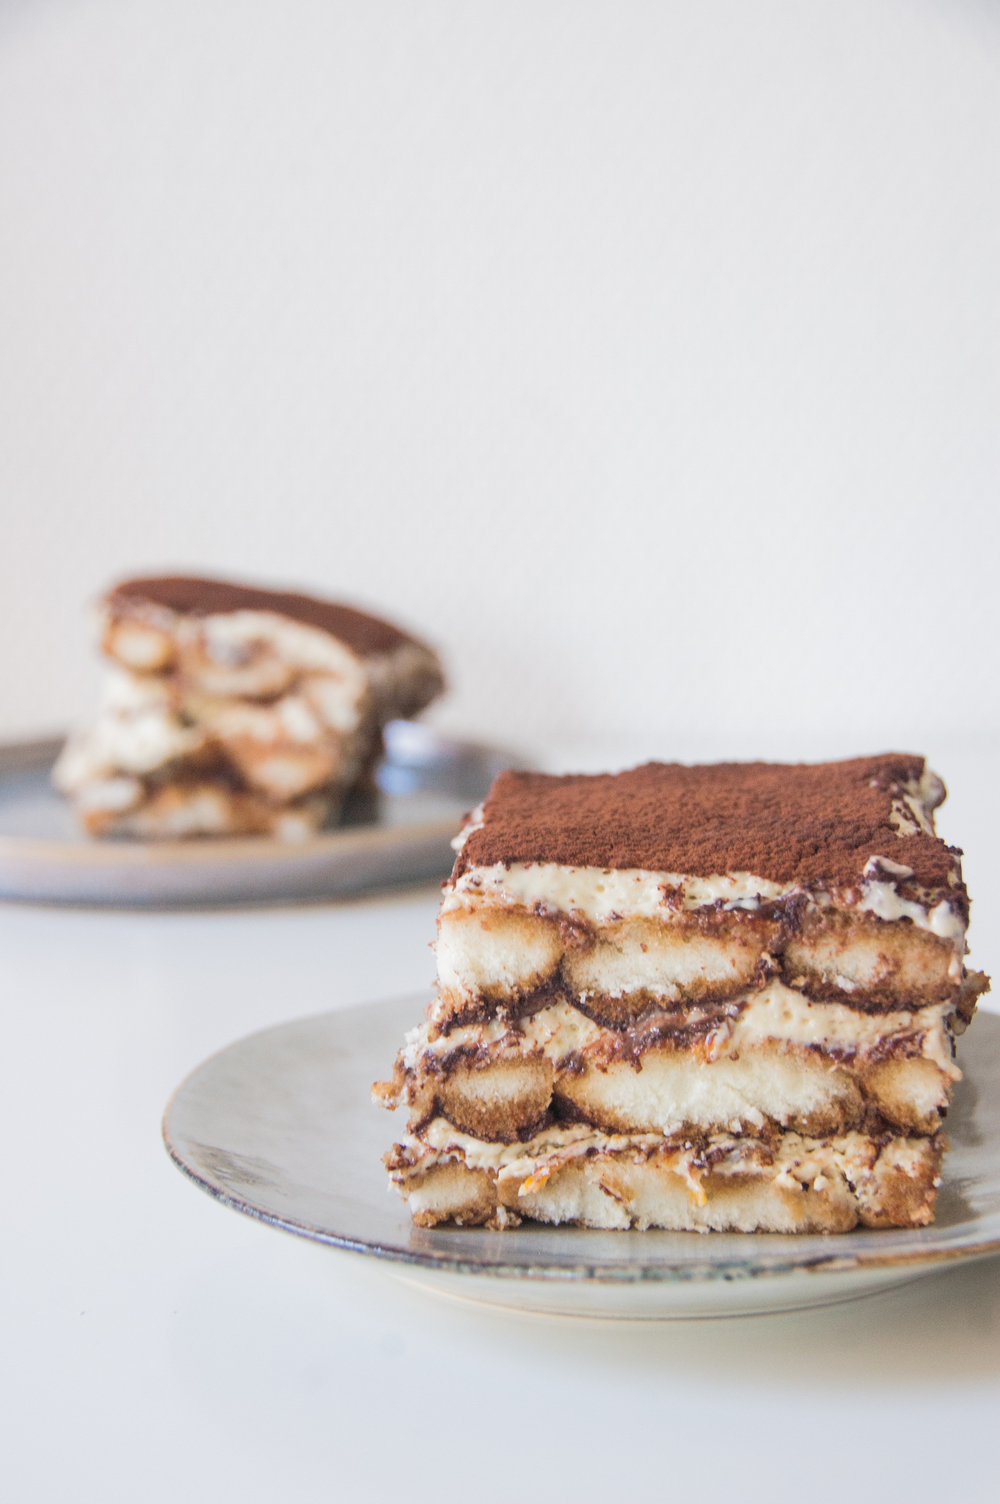 Tiramisu is a classic Italian dessert that originated from the Veneto region. Formed out of layers of ladyfingers dipped in espresso and layered between a mascarpone, and custard mix, this makes for the best way to beat the Monday blues!